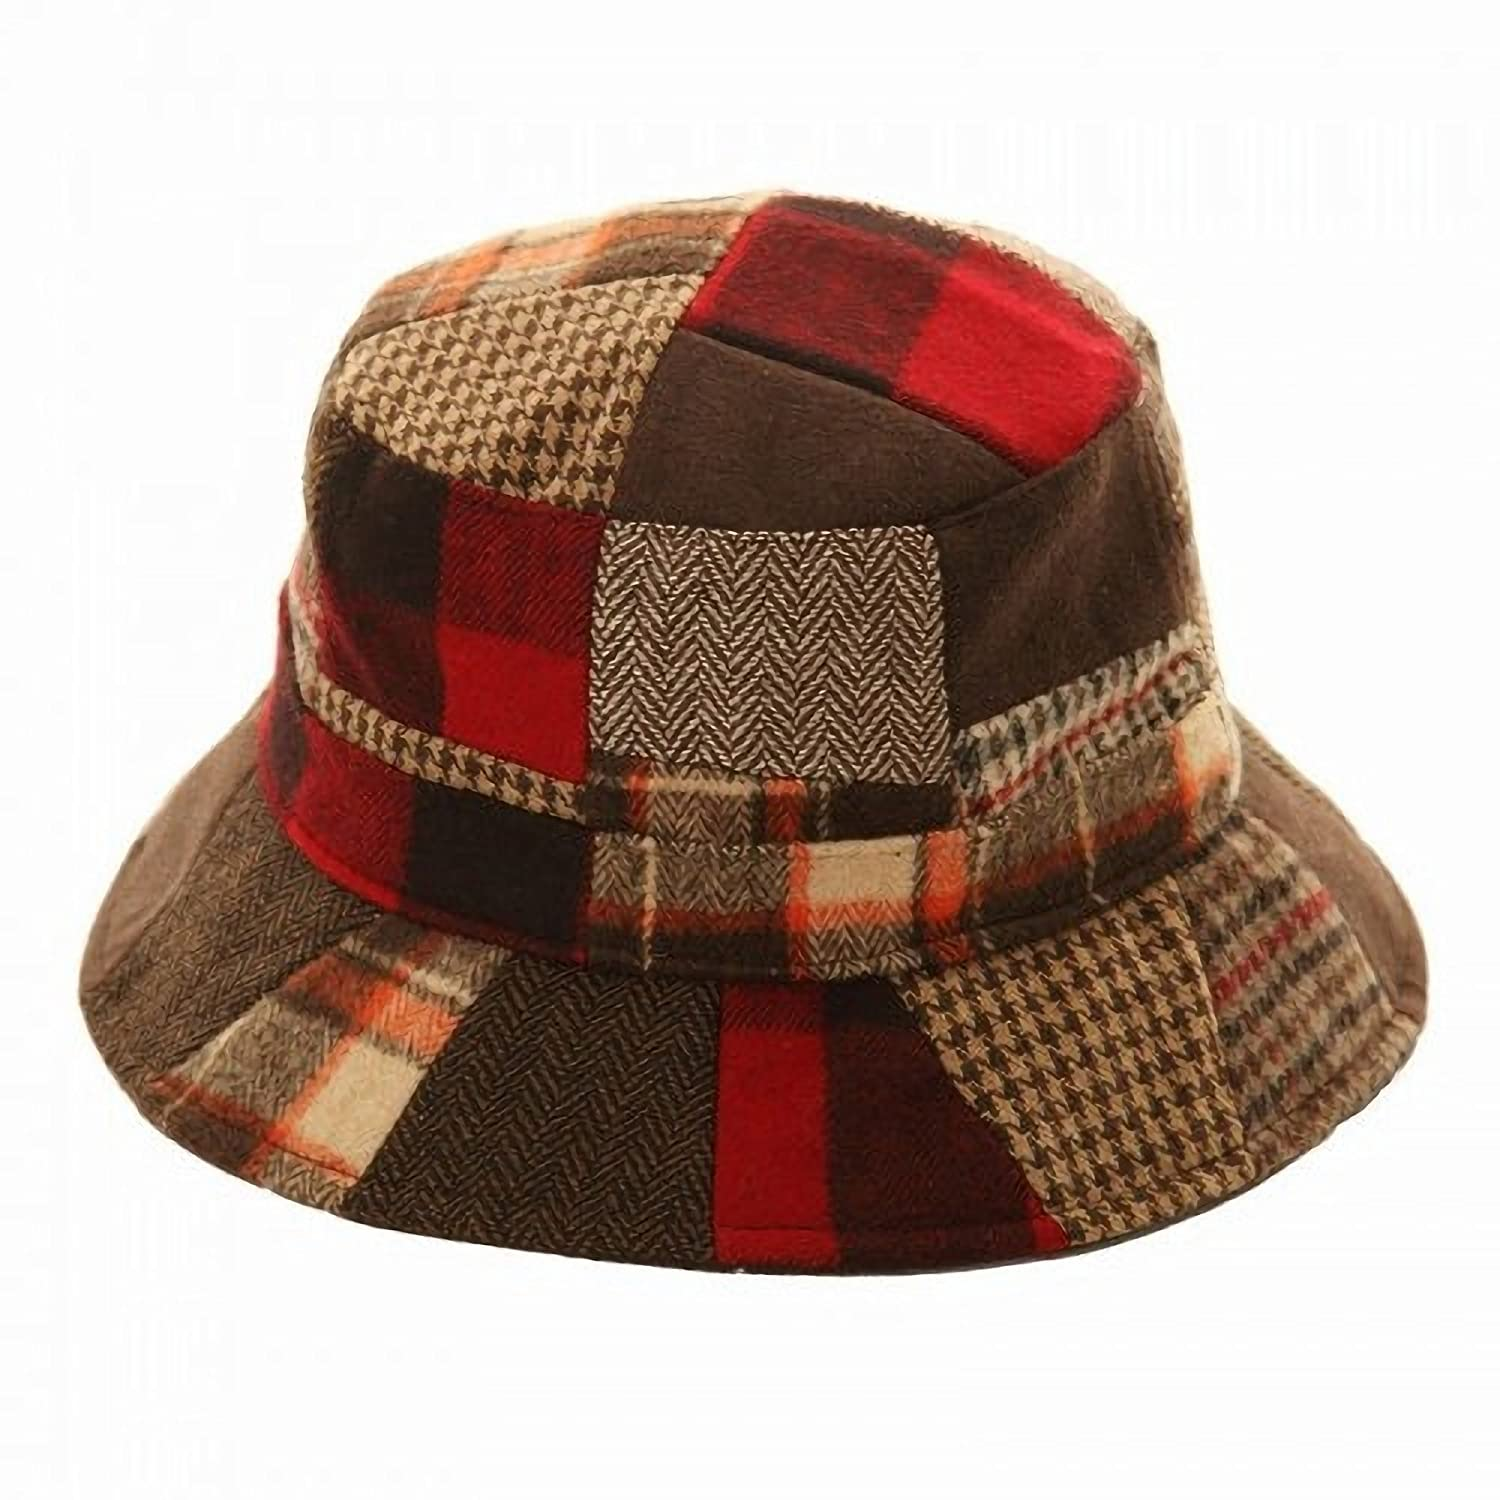 Adults Unisex Patchwork Wool Blend Bucket Hat